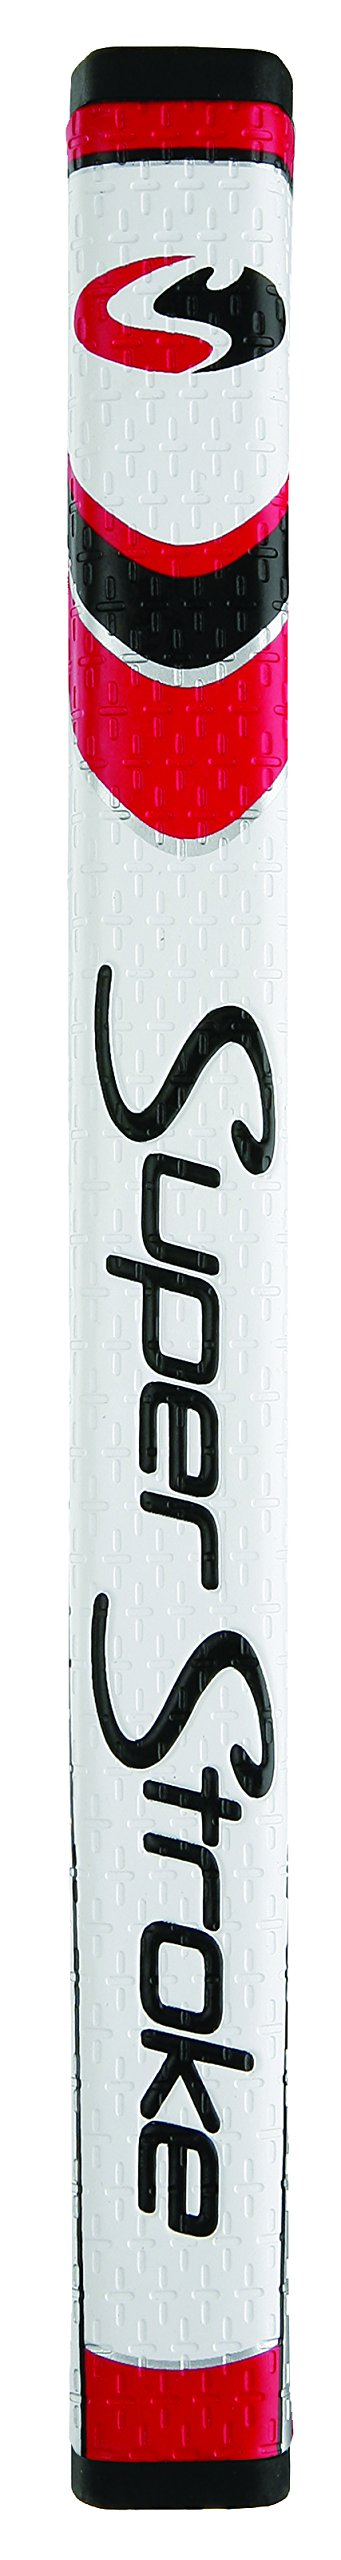 Superstroke Pistol GTR Tour Putter Grip, White/Red by SuperStroke